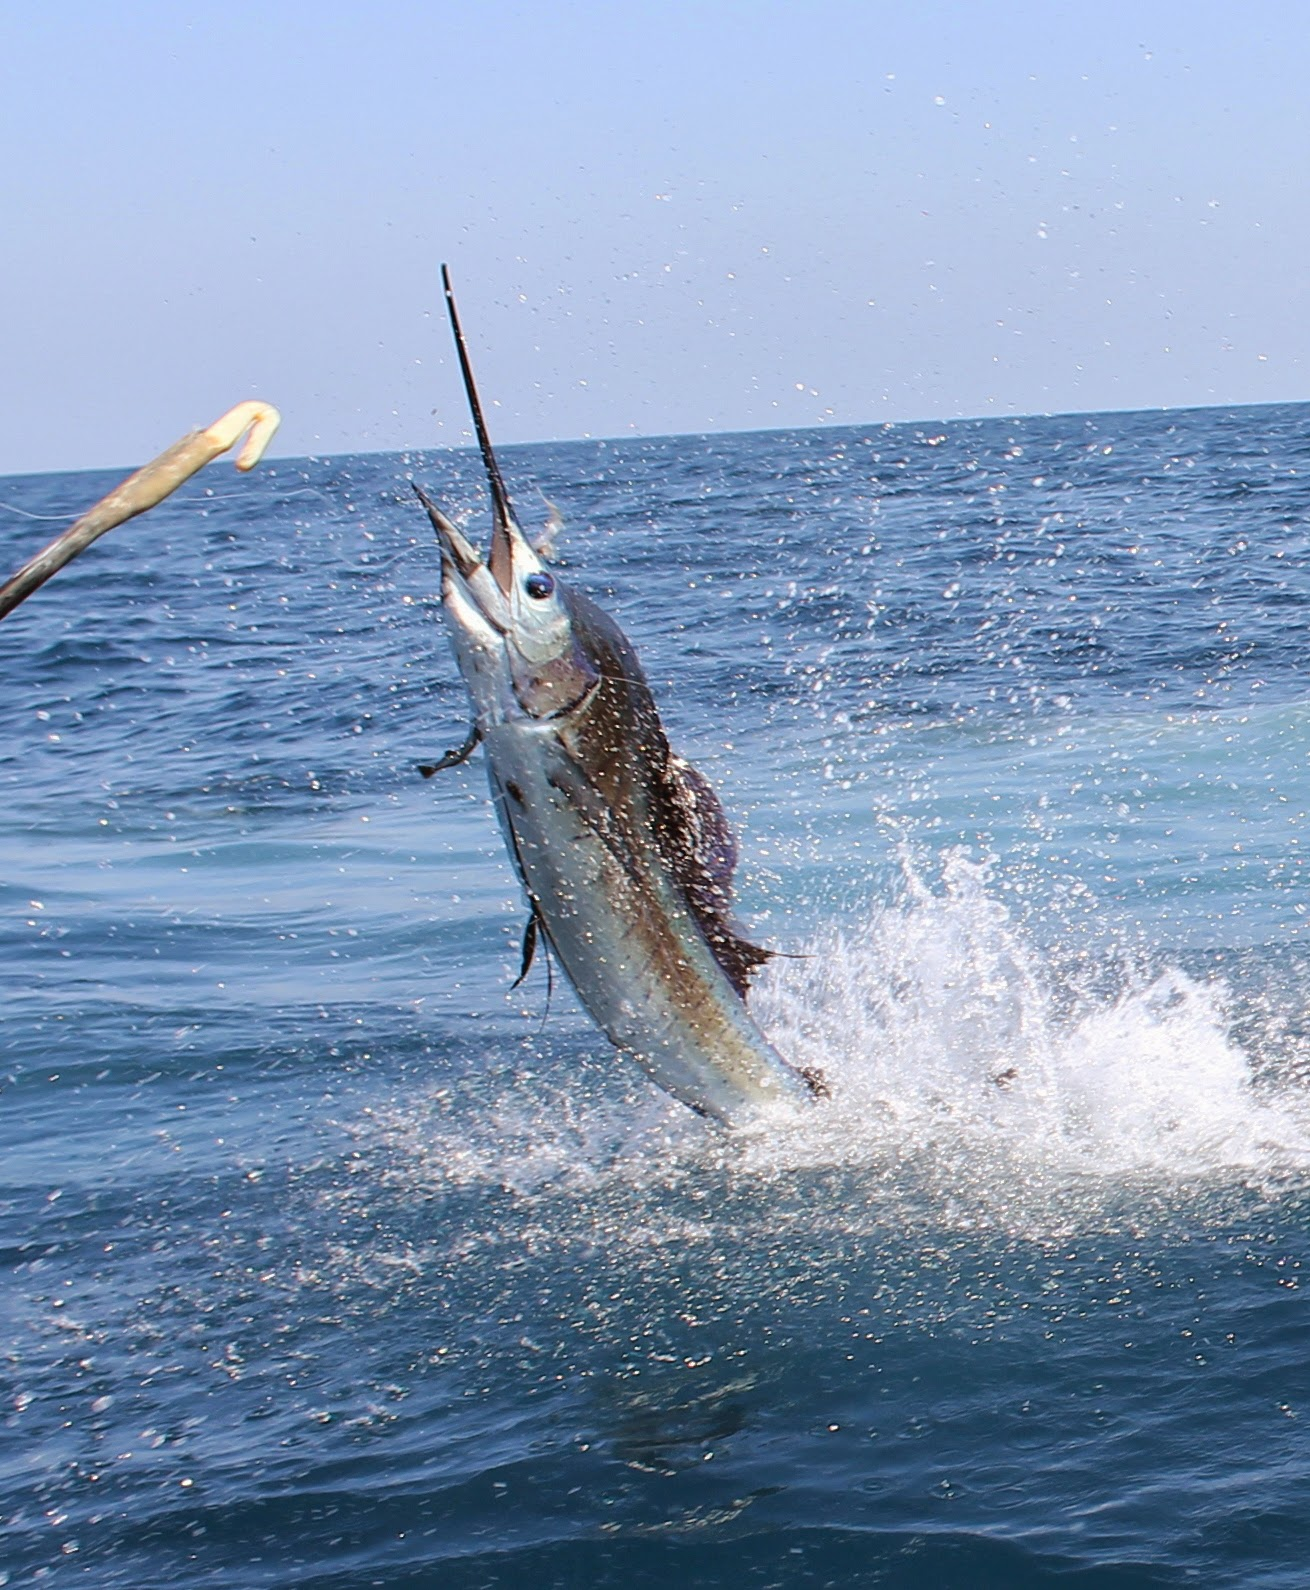 Sailfish jumping high - photo#5